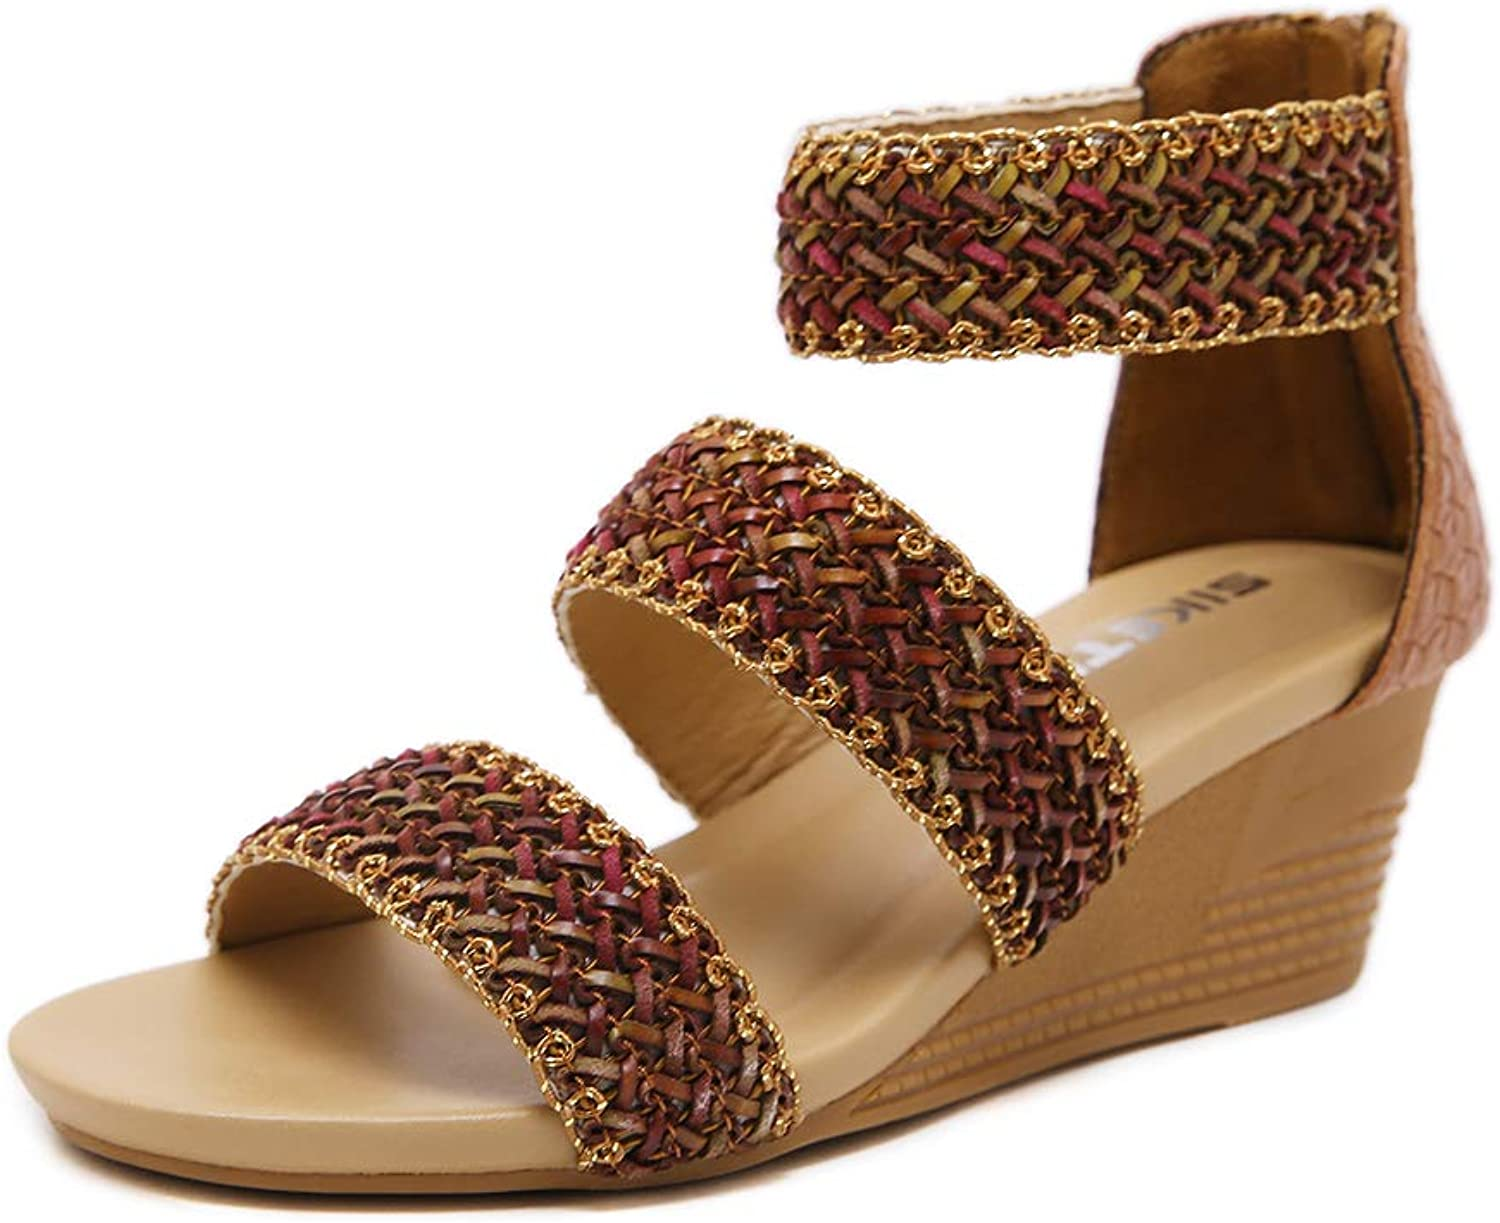 Baviue Womens Knitted Leather Zipper Sandles Summer Wedge Sandals